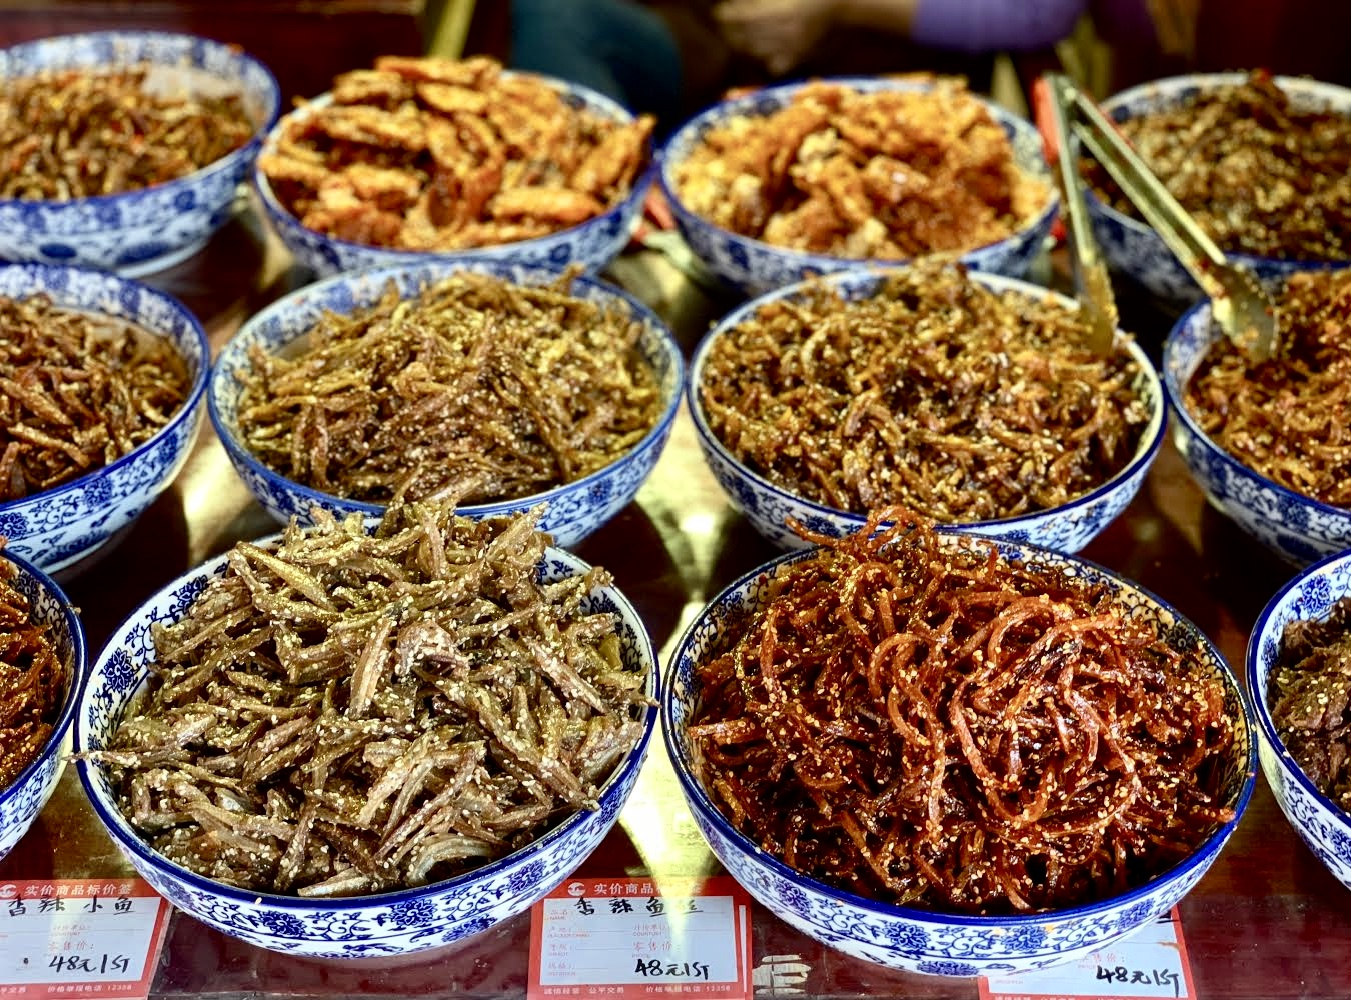 Food from an open market in China